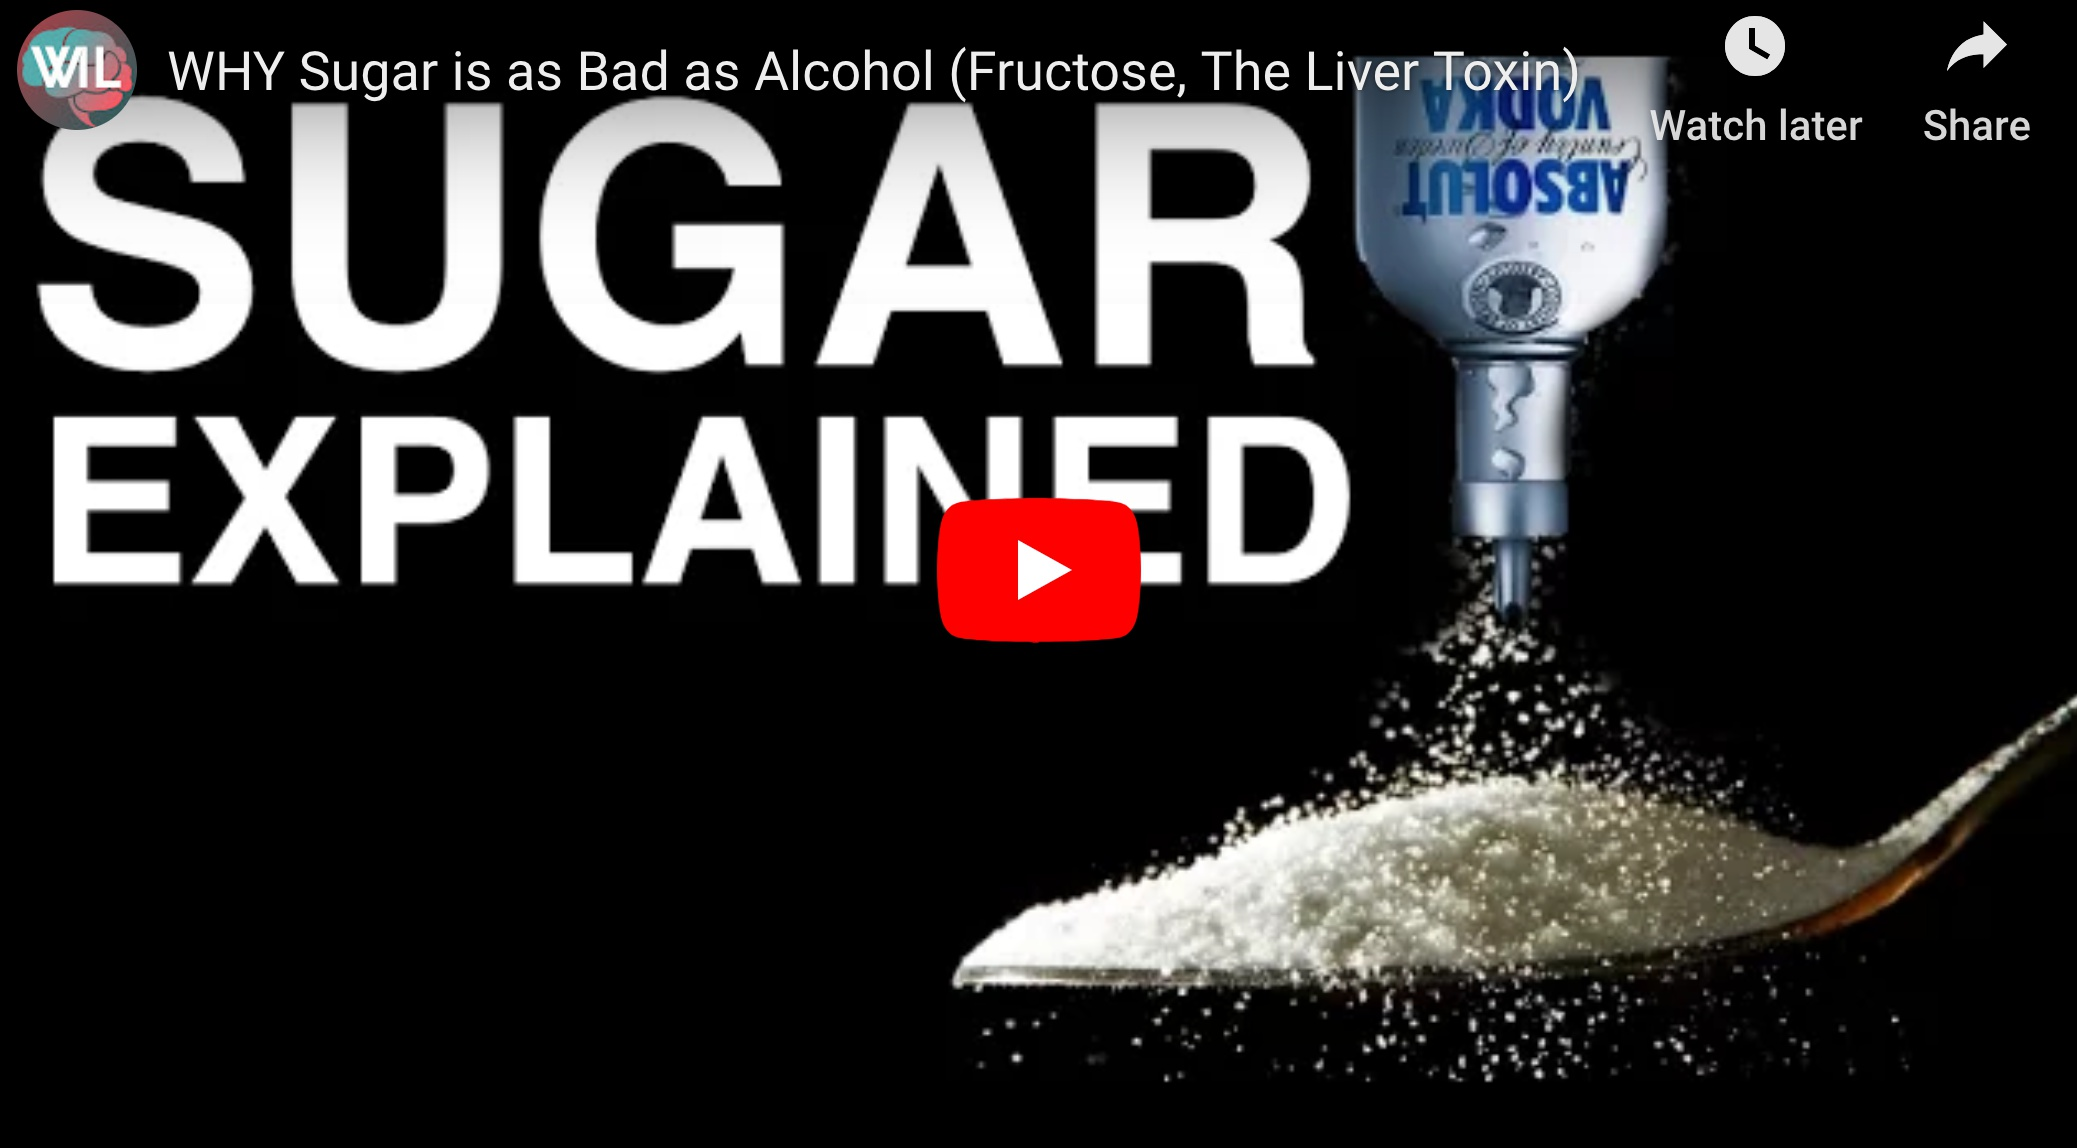 Fructose, The Liver Toxin (Why Sugar is as Bad as Alcohol)